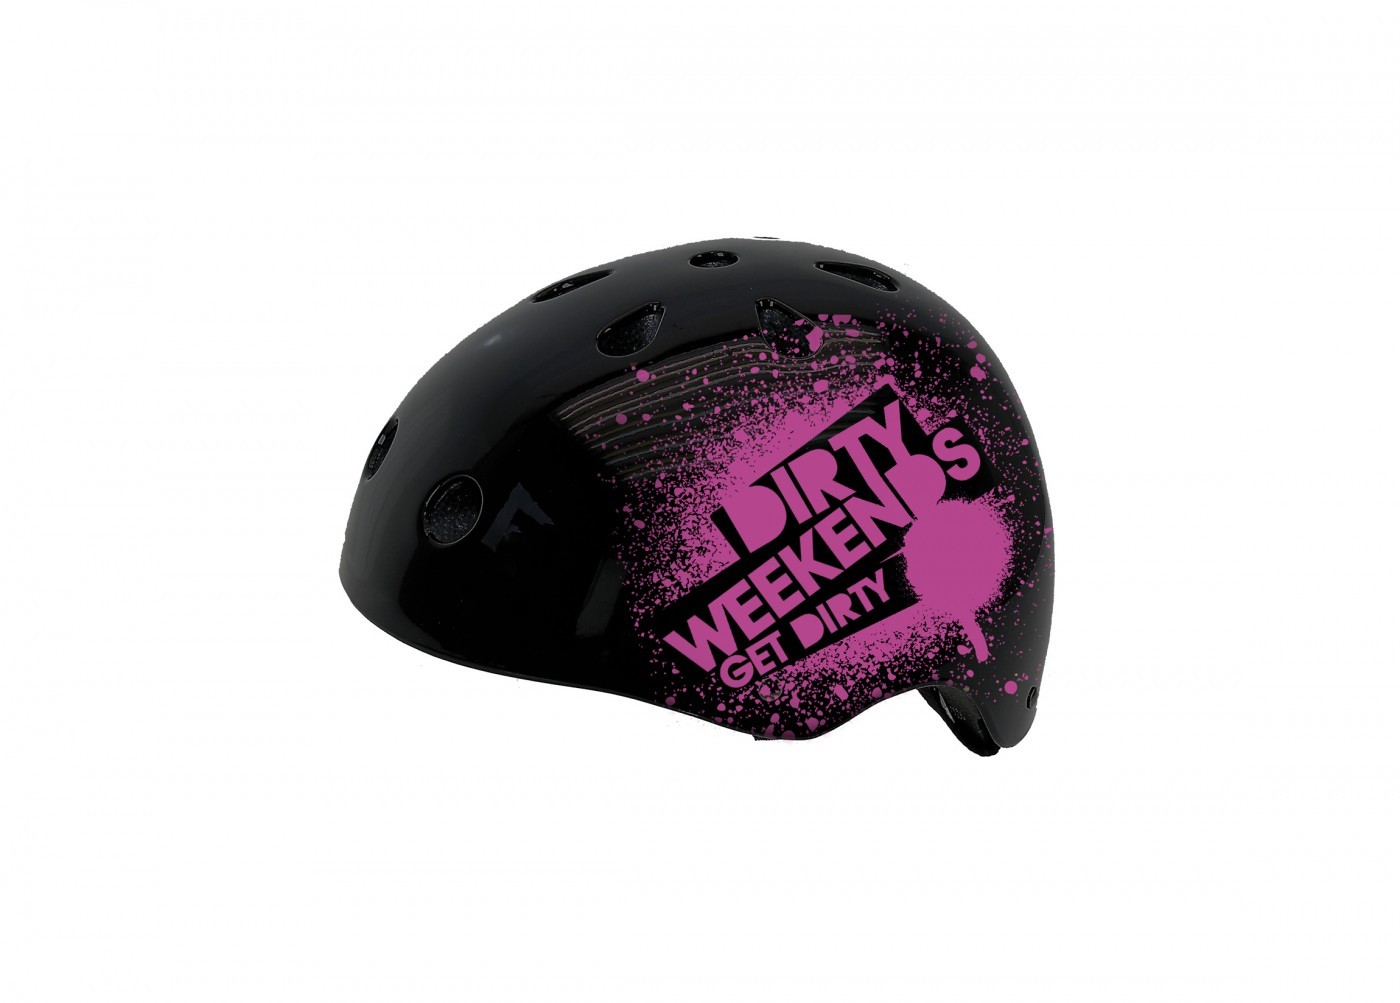 casco-sticker-1400x1004